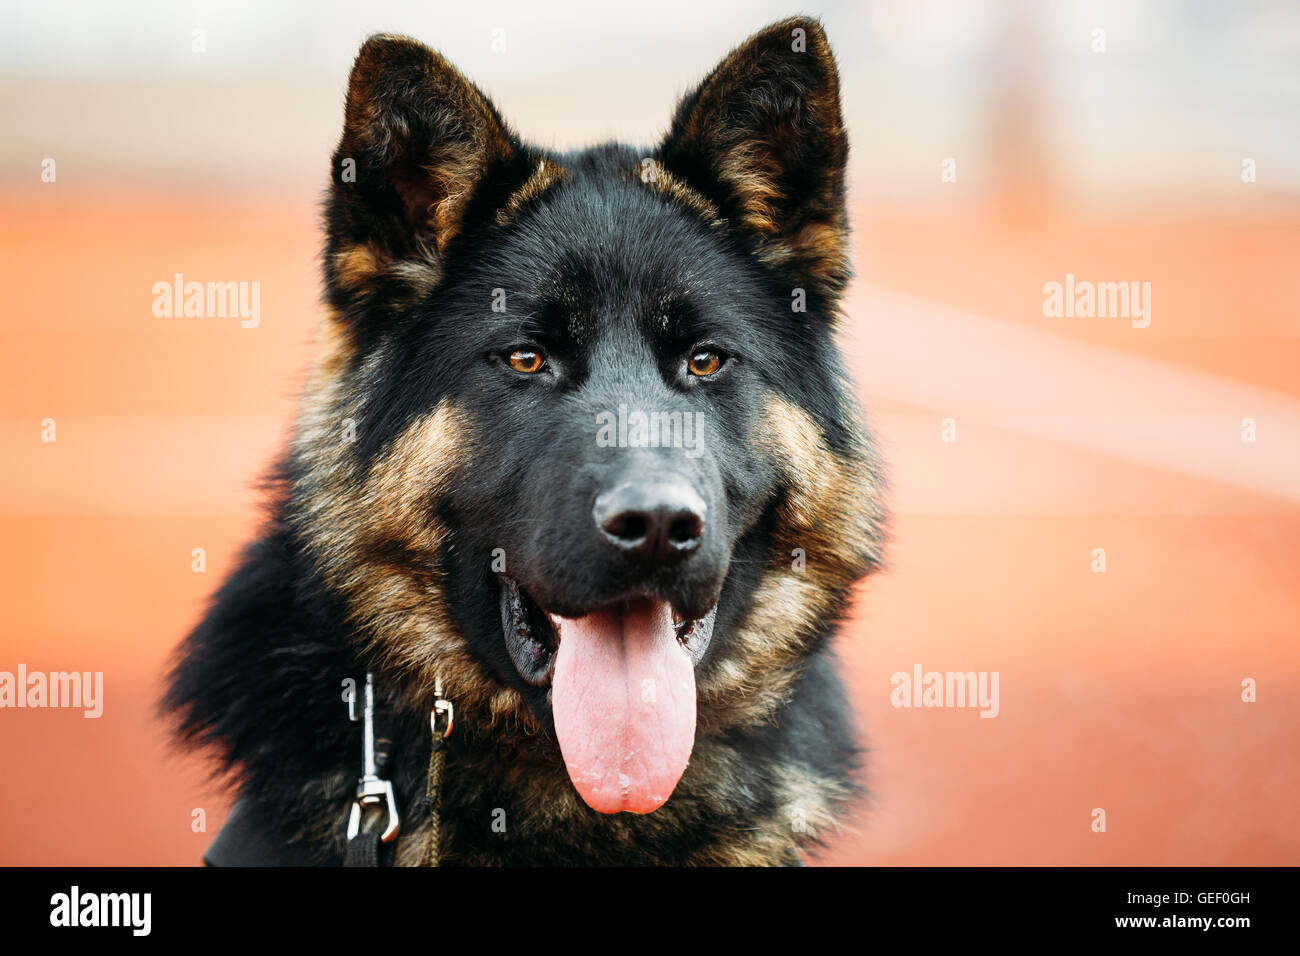 Close Up Young Puppy Black German Shepherd Dog, Alsatian Wolf Dog - Stock Image